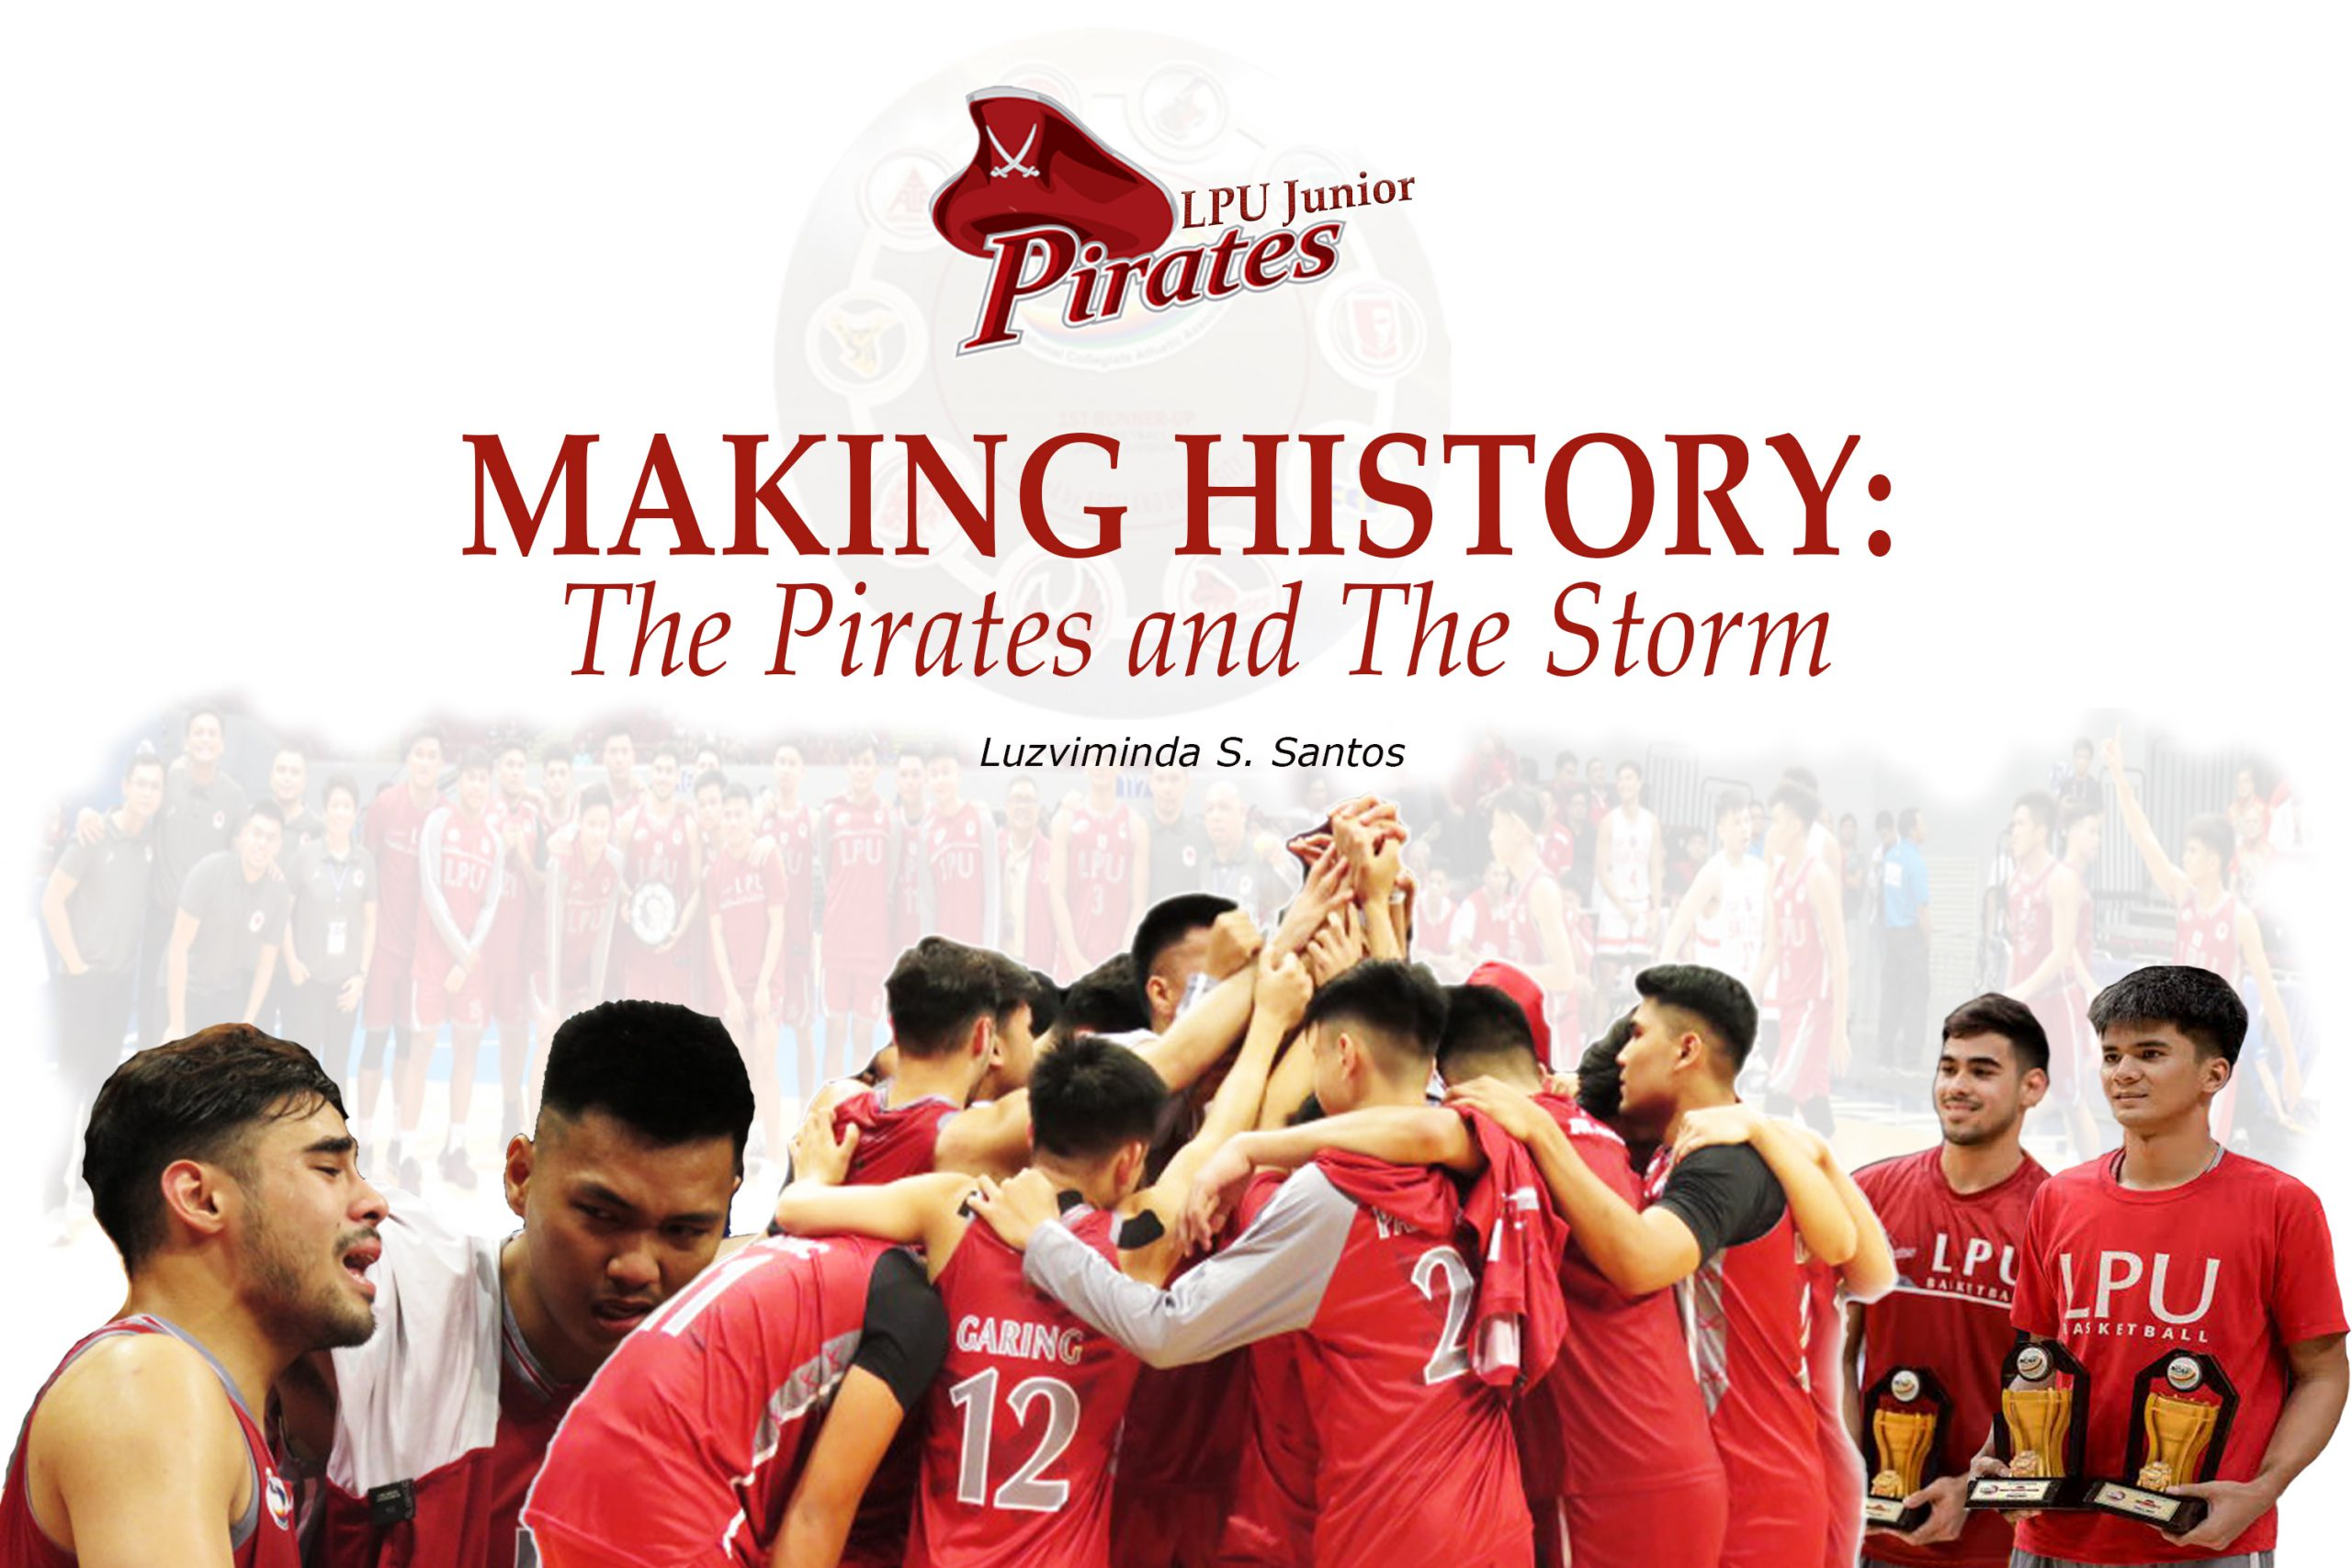 MAKING HISTORY: The Pirates and The Storm